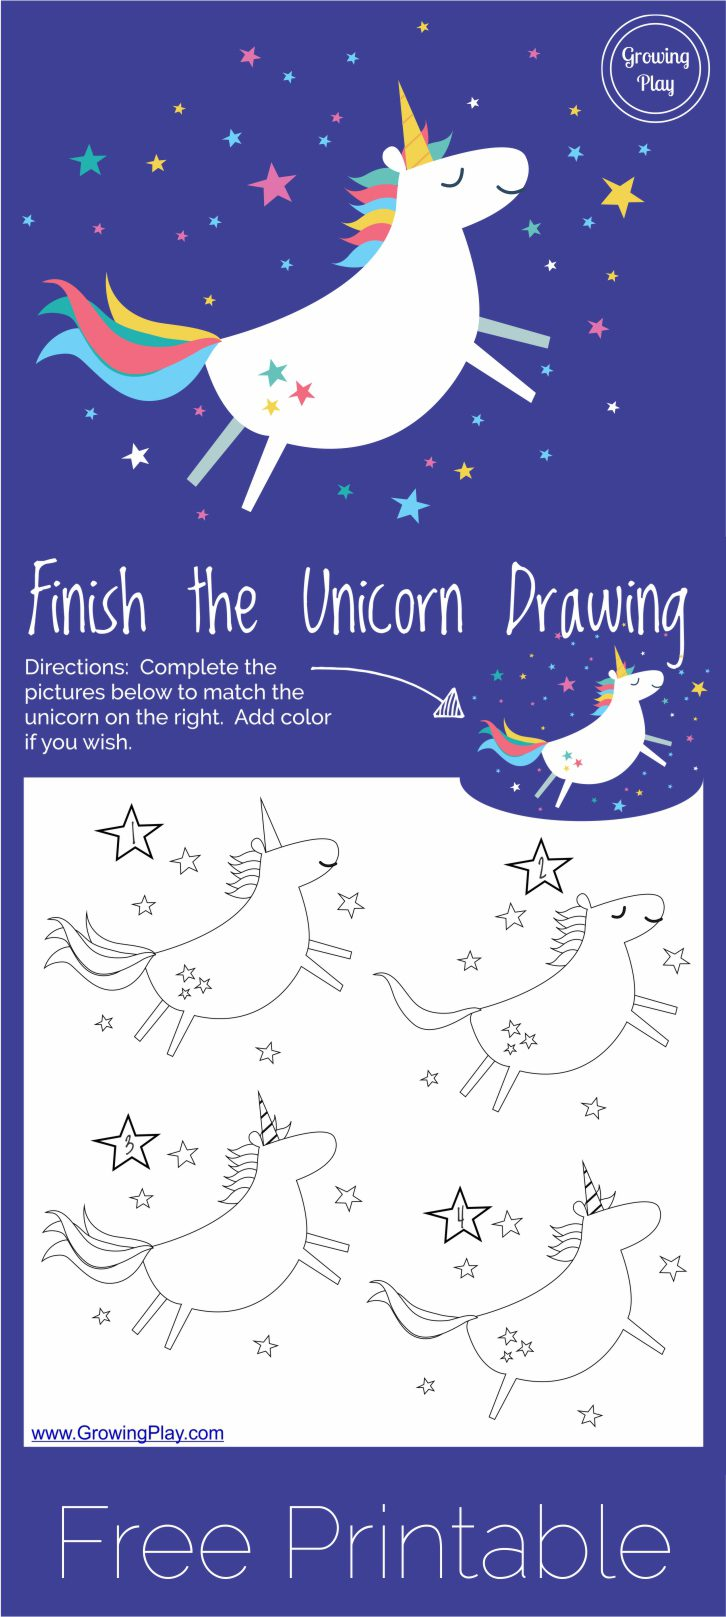 Finish the Unicorn Drawing